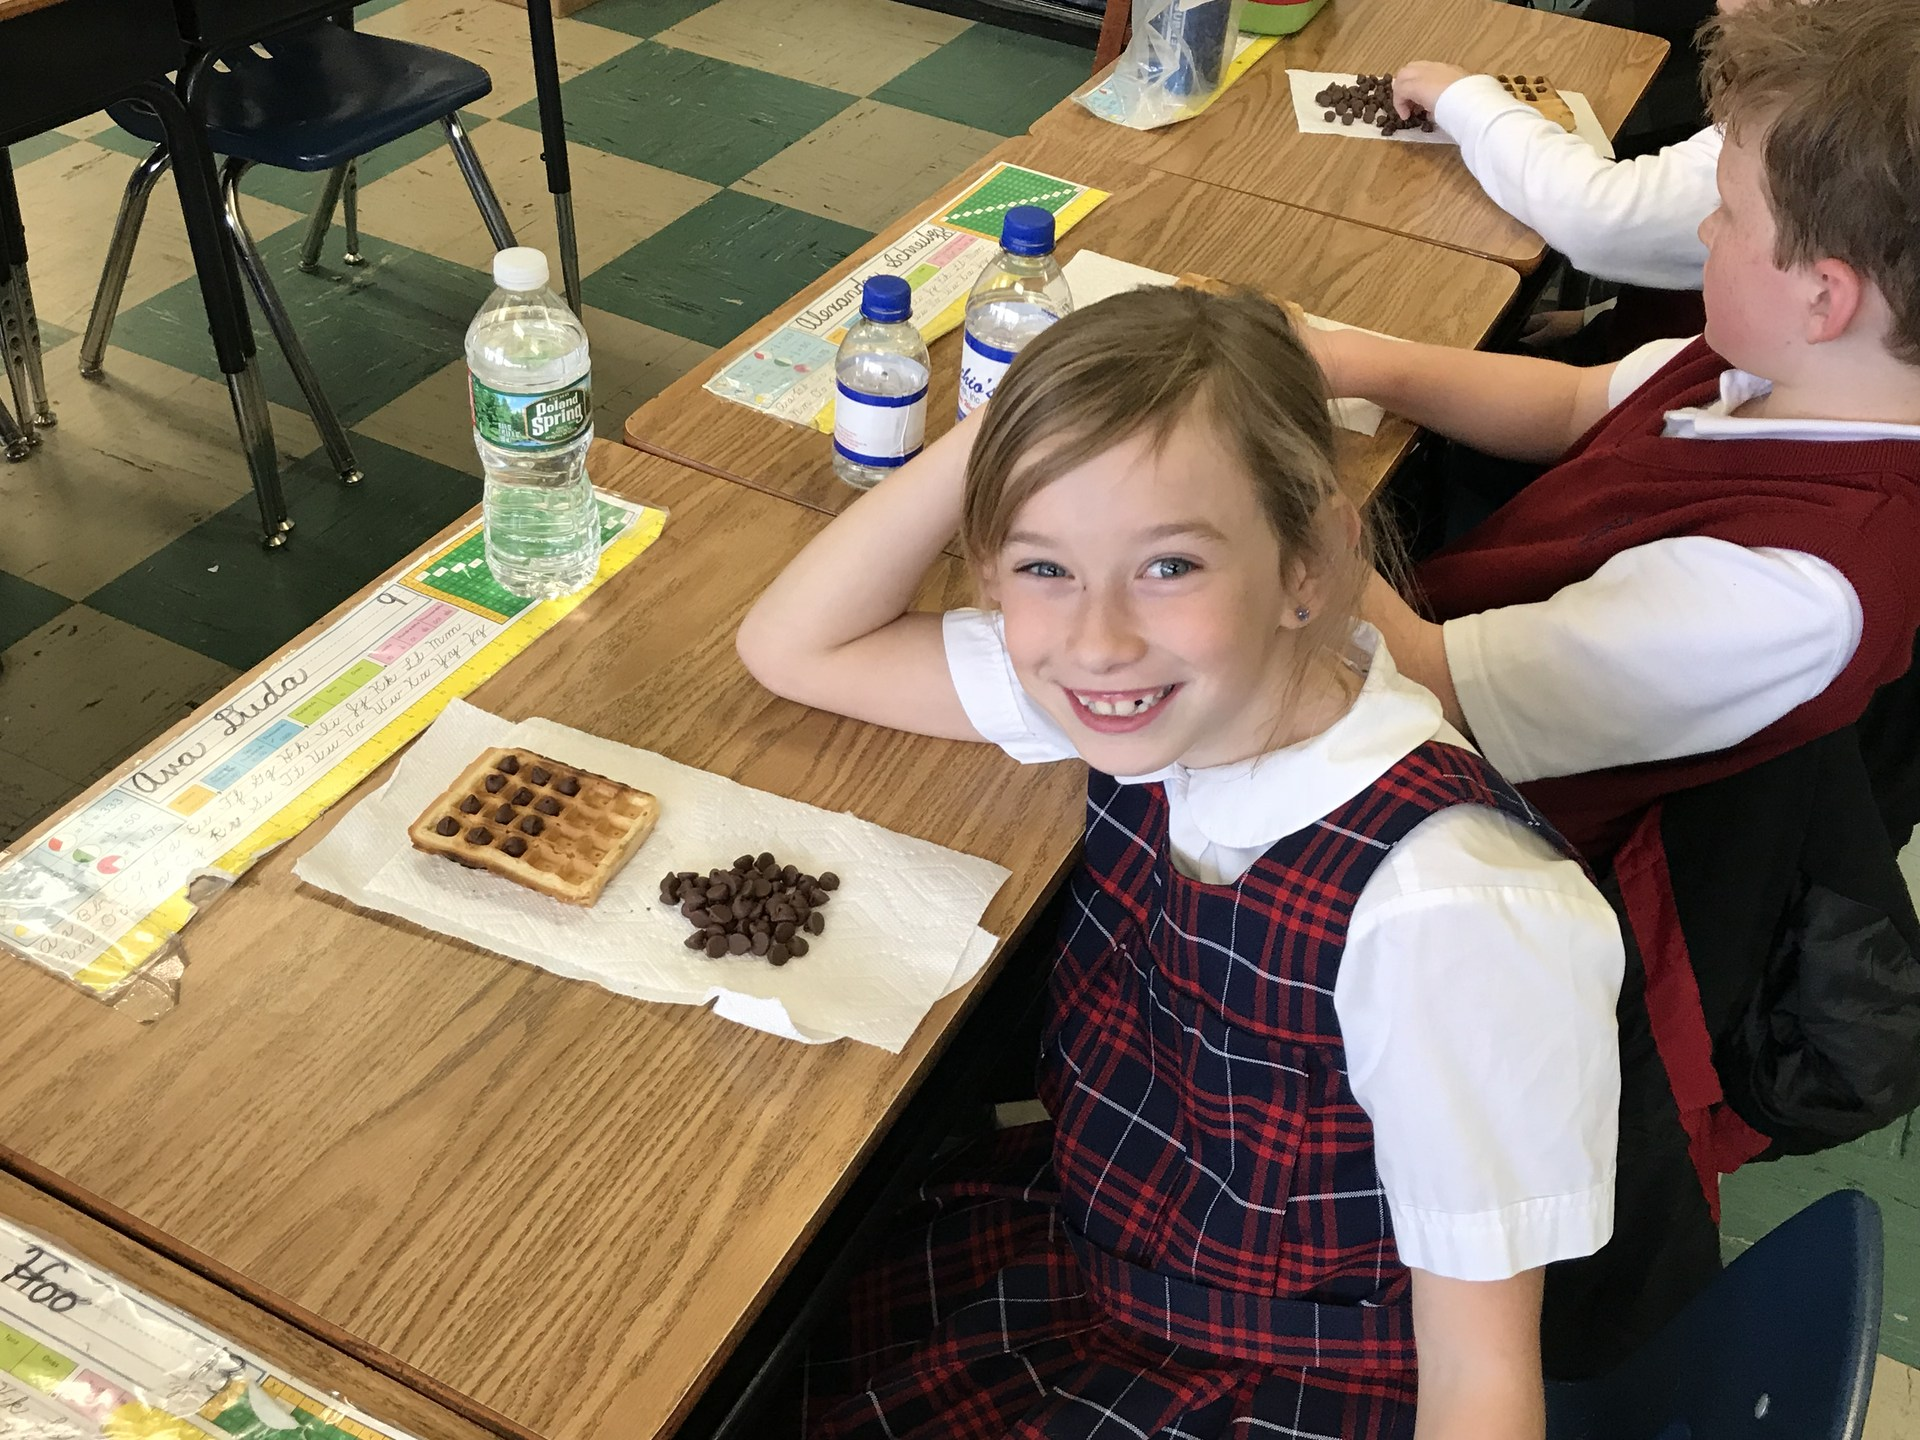 Student smiling after learning math lesson